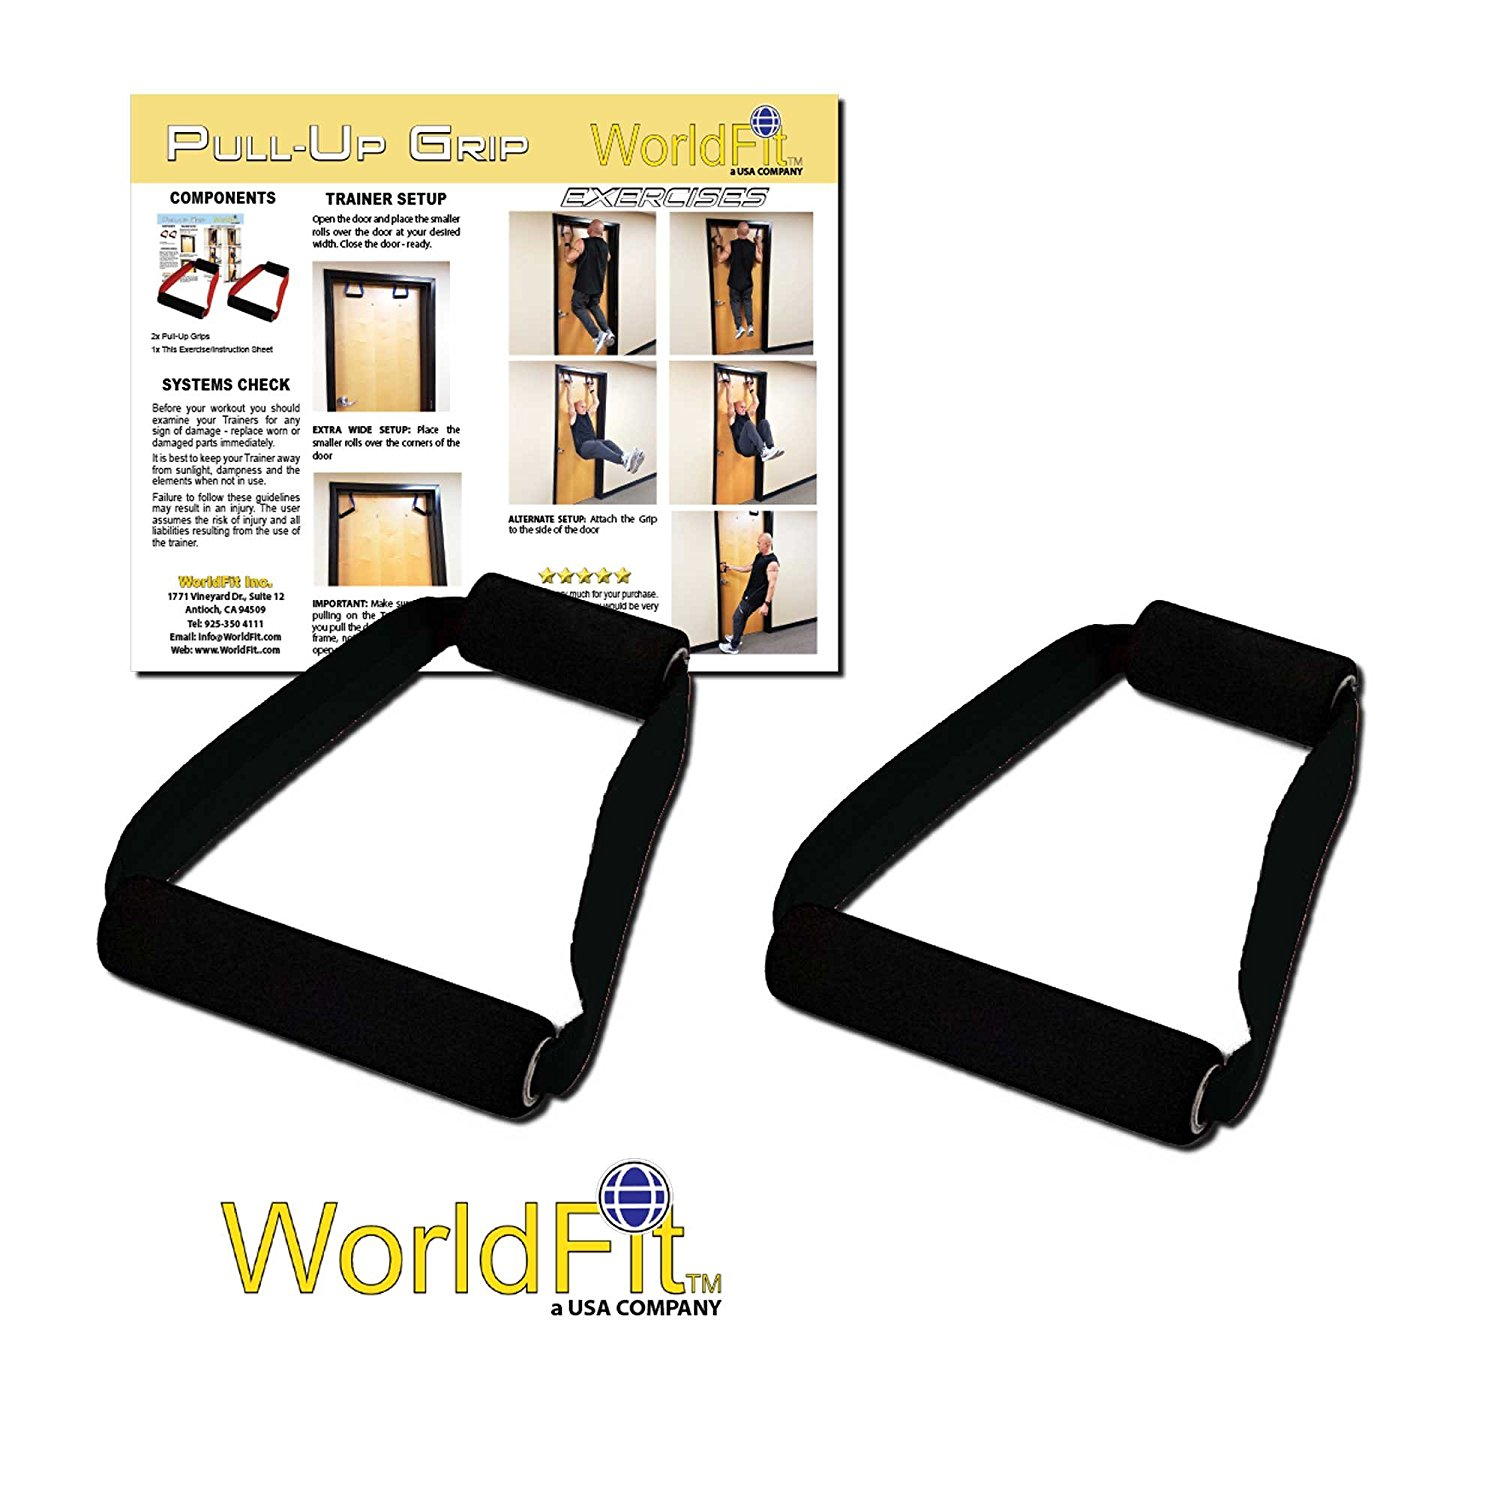 WorldFit Pull-Up Grips for Door in Home, Office and Hotel, Portable Pull Up Bar Home Gym (black)